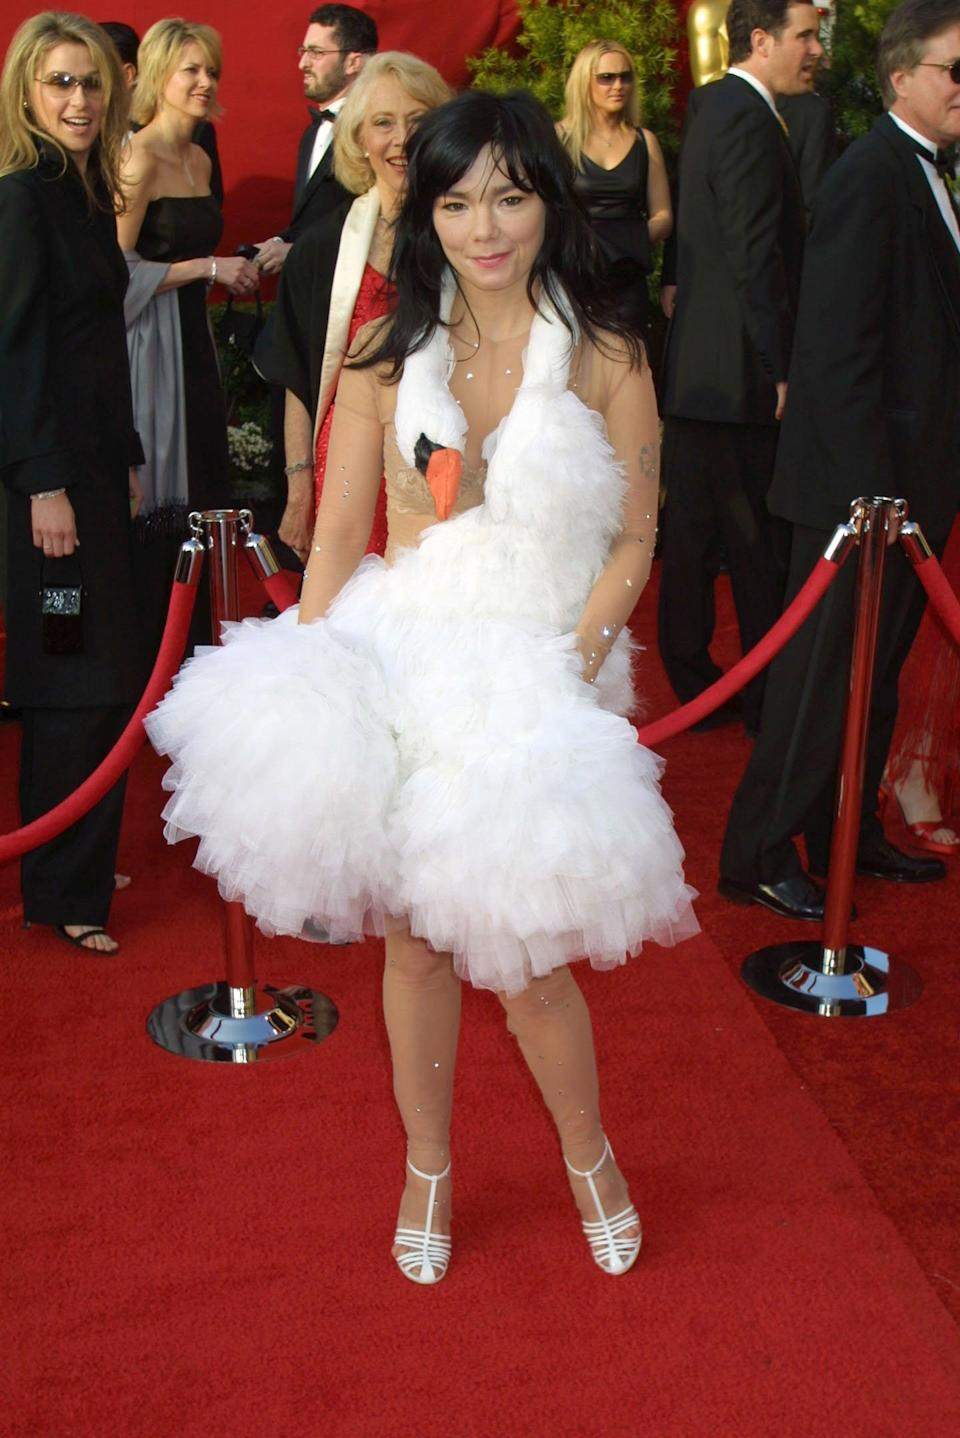 "<p>Björk's ""swan dress"" became a global sensation for its offbeat design. The quirky Icelandic singer even stopped several times to ""lay eggs"" on the red carpet for bewildered spectators. Although the look was blasted by fashion critics, Björk maintains that the dress was merely a joke intended to ""take the piss"" out of the event. ""I was actually amazed at how many people thought I was serious,"" she told the <a href=""https://www.thetimes.co.uk/article/bjork-again-2d37mrbvphv"" rel=""nofollow noopener"" target=""_blank"" data-ylk=""slk:Sunday Times"" class=""link rapid-noclick-resp""><em>Sunday Times</em></a> in 2004. ""I didn't mean to cause a riot.""</p>"